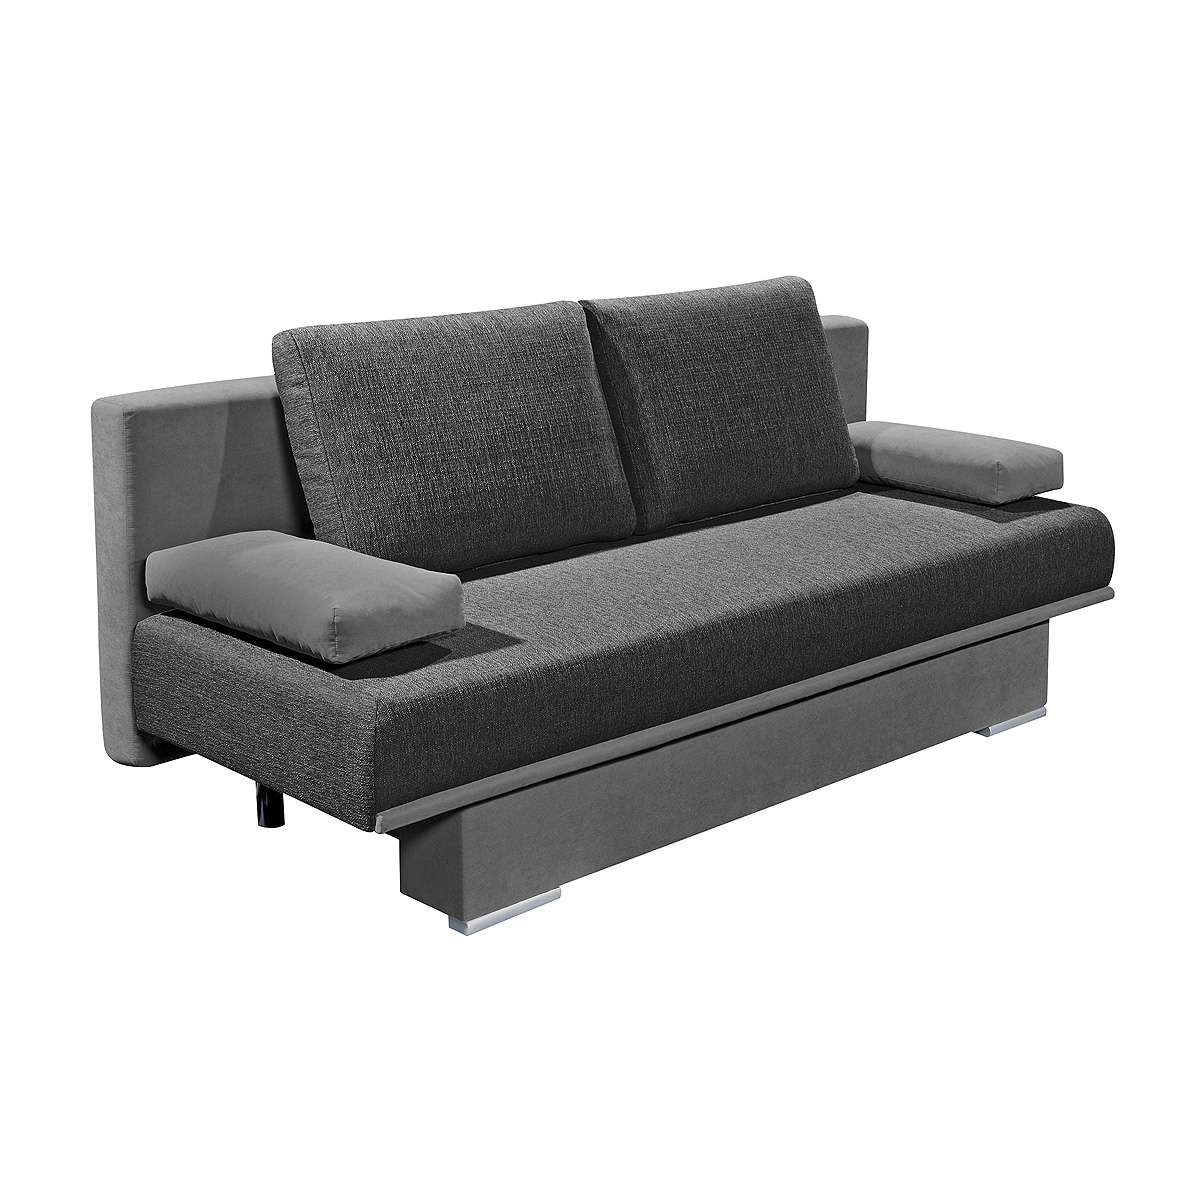 schlafsofa sina sofa funktionssofa mit bettkasten und kissen in anthrazit eur 309 95 picclick de. Black Bedroom Furniture Sets. Home Design Ideas